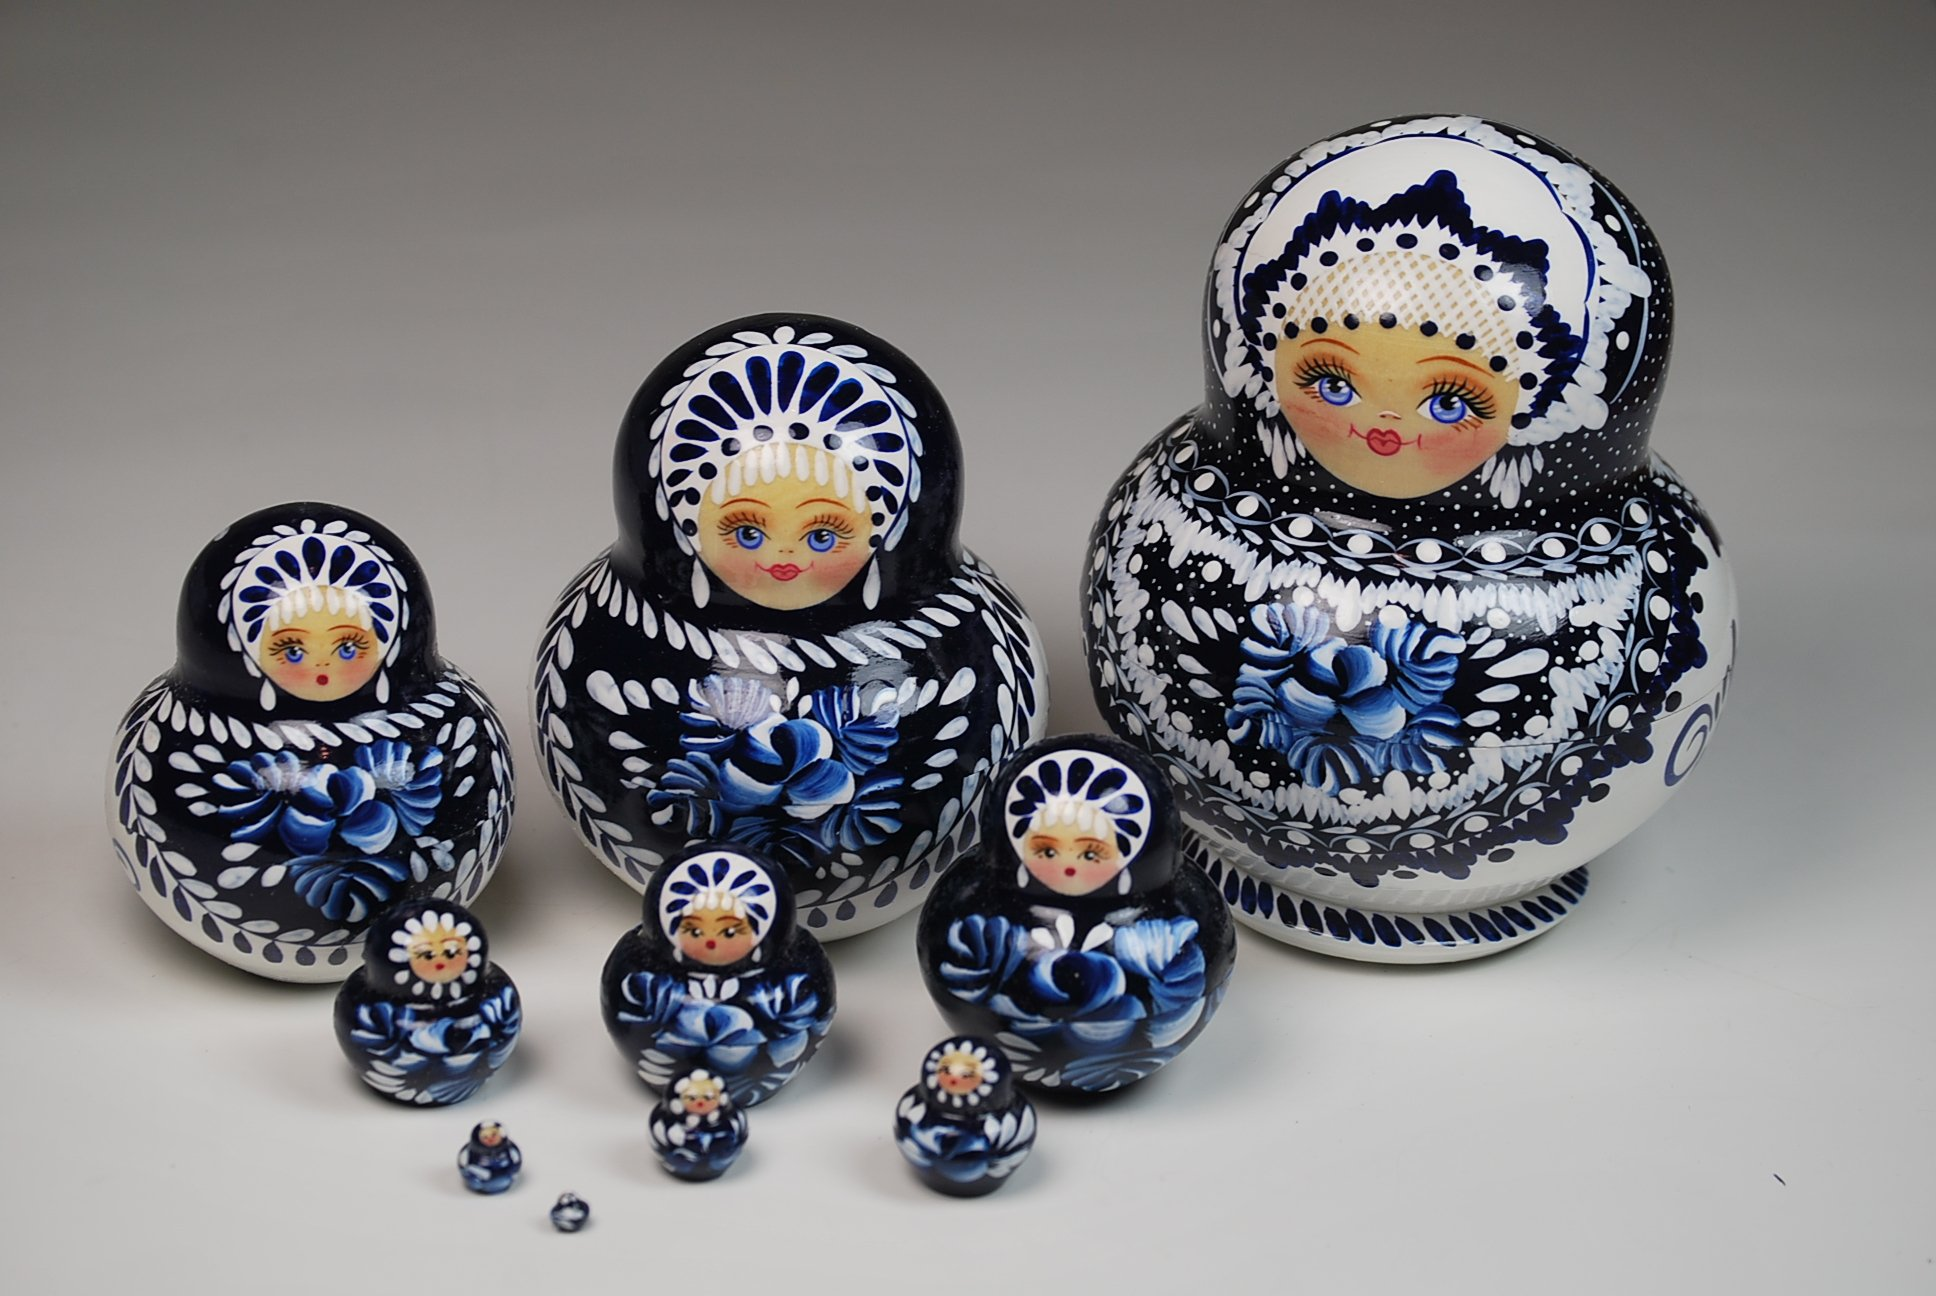 Unique Museum Quality Artist Signed Russian Hand Painted Nesting Dolls Set of 10 pcs Christmas Gift by Gabriella's Gifts (Image #5)